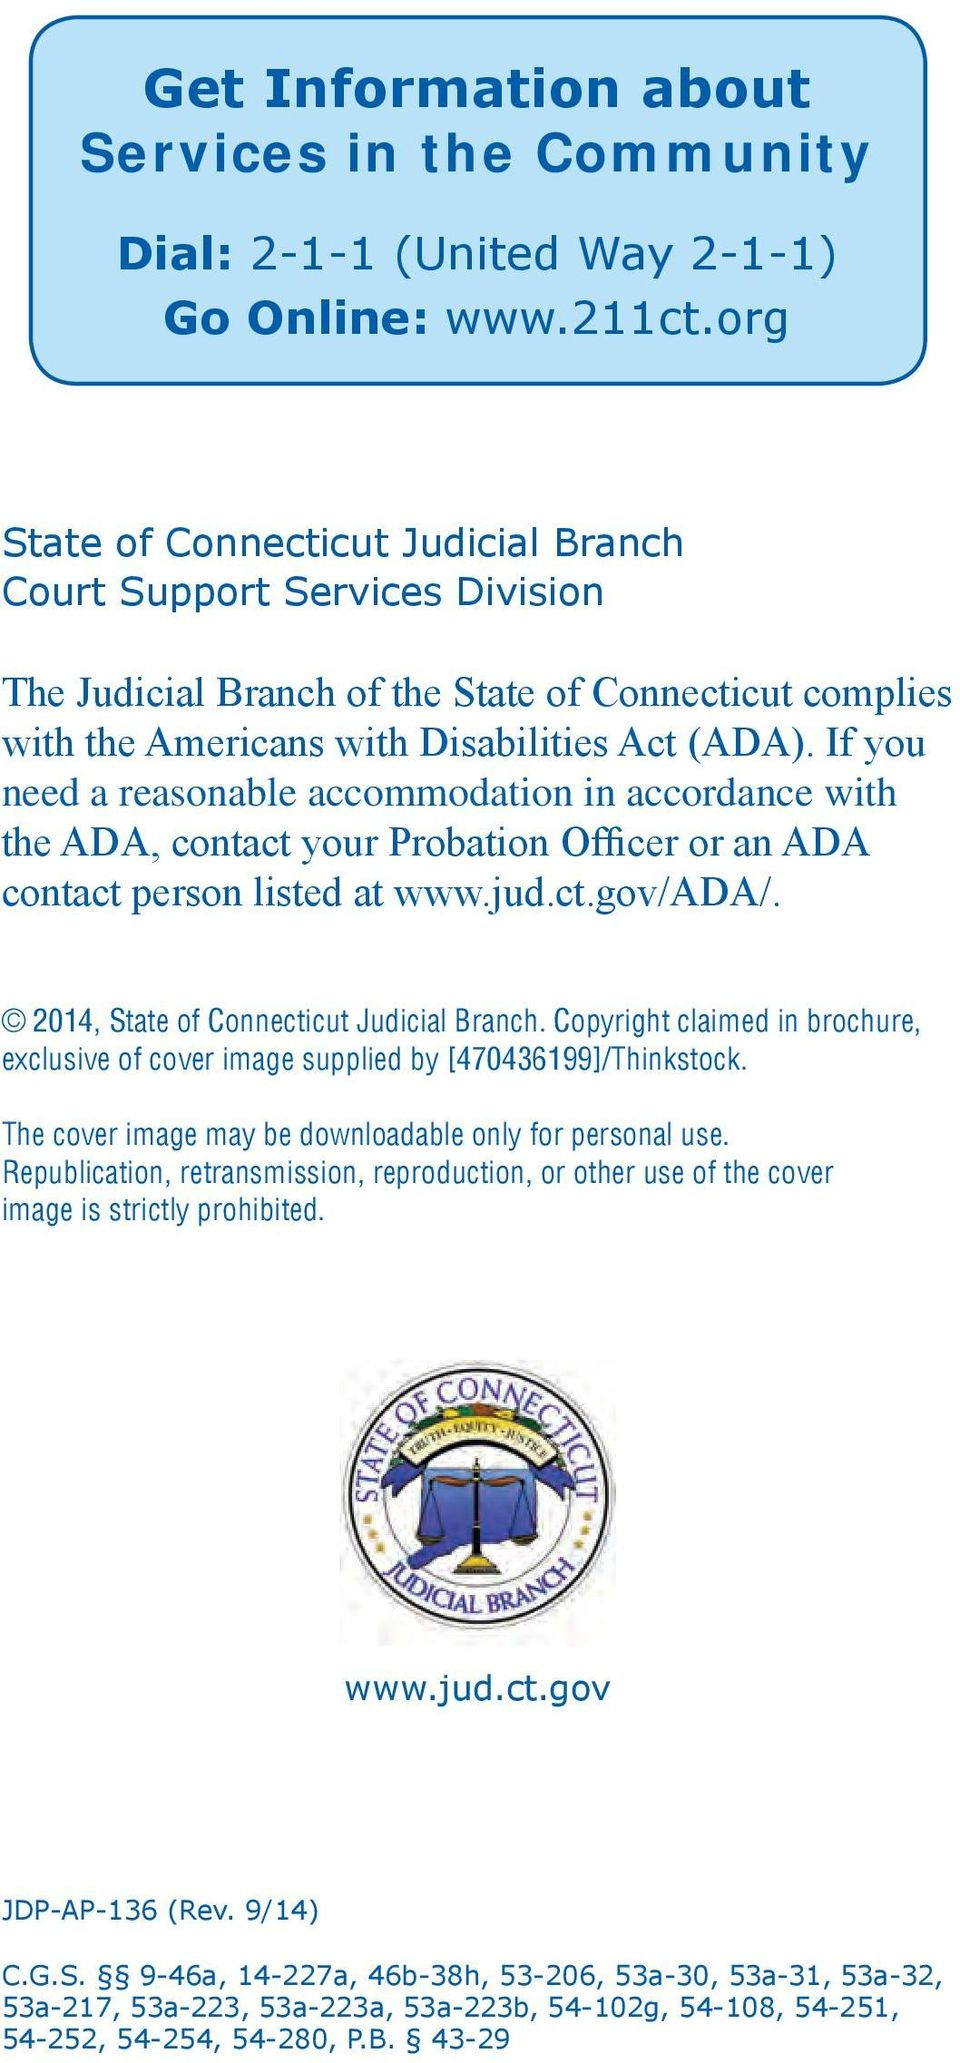 If you need a reasonable accommodation in accordance with the ADA, contact your Probation Officer or an ADA contact person listed at www.jud.ct.gov/ada/. 2014, State of Connecticut Judicial Branch.